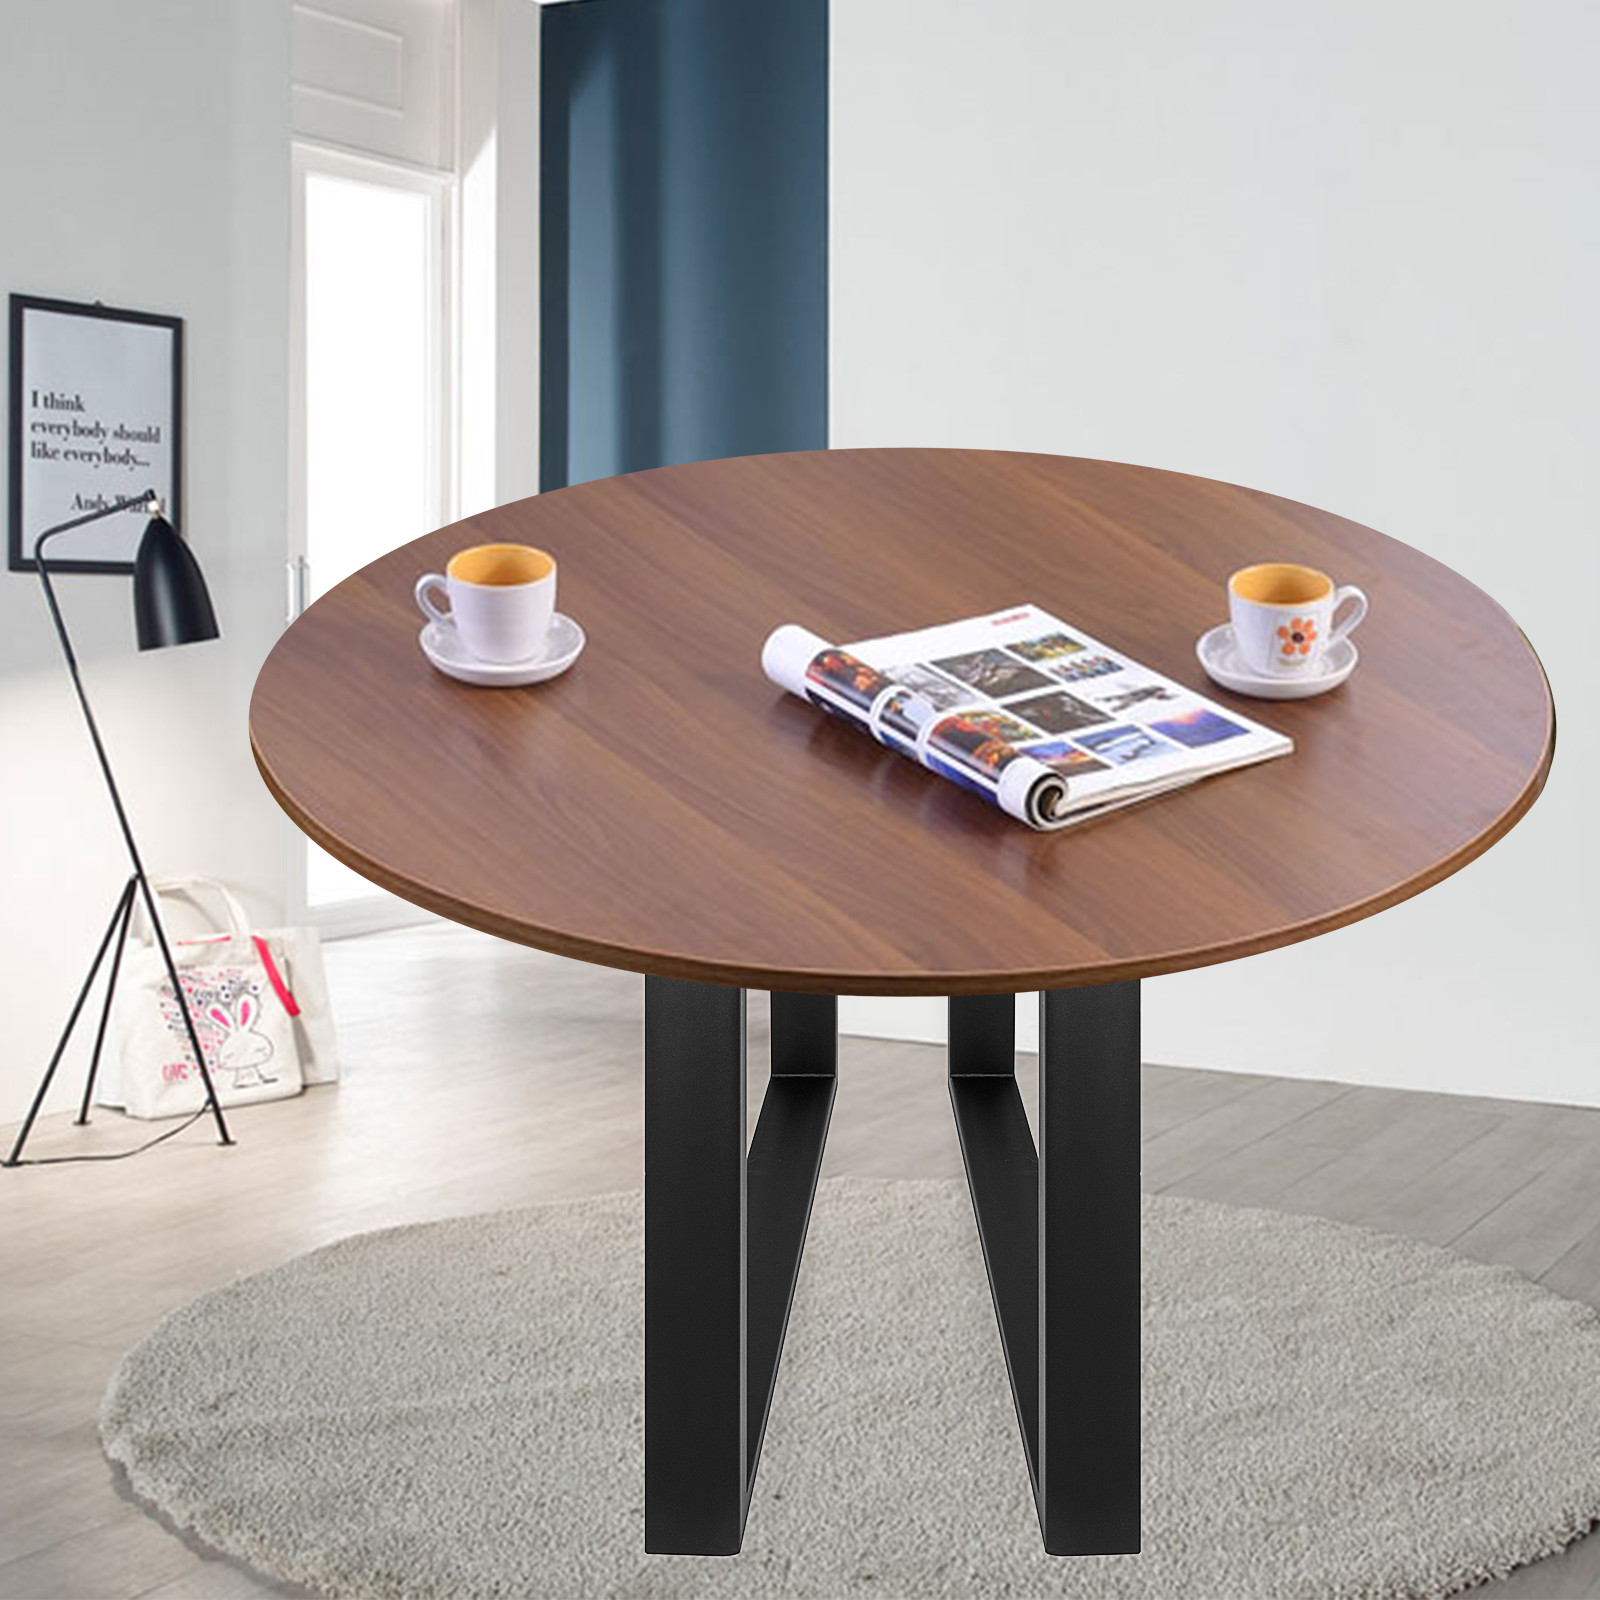 2X-Table-Legs-Black-Dining-Table-Leg-Heavy-Duty-Computer-Desk-Legs-Rectangle thumbnail 34